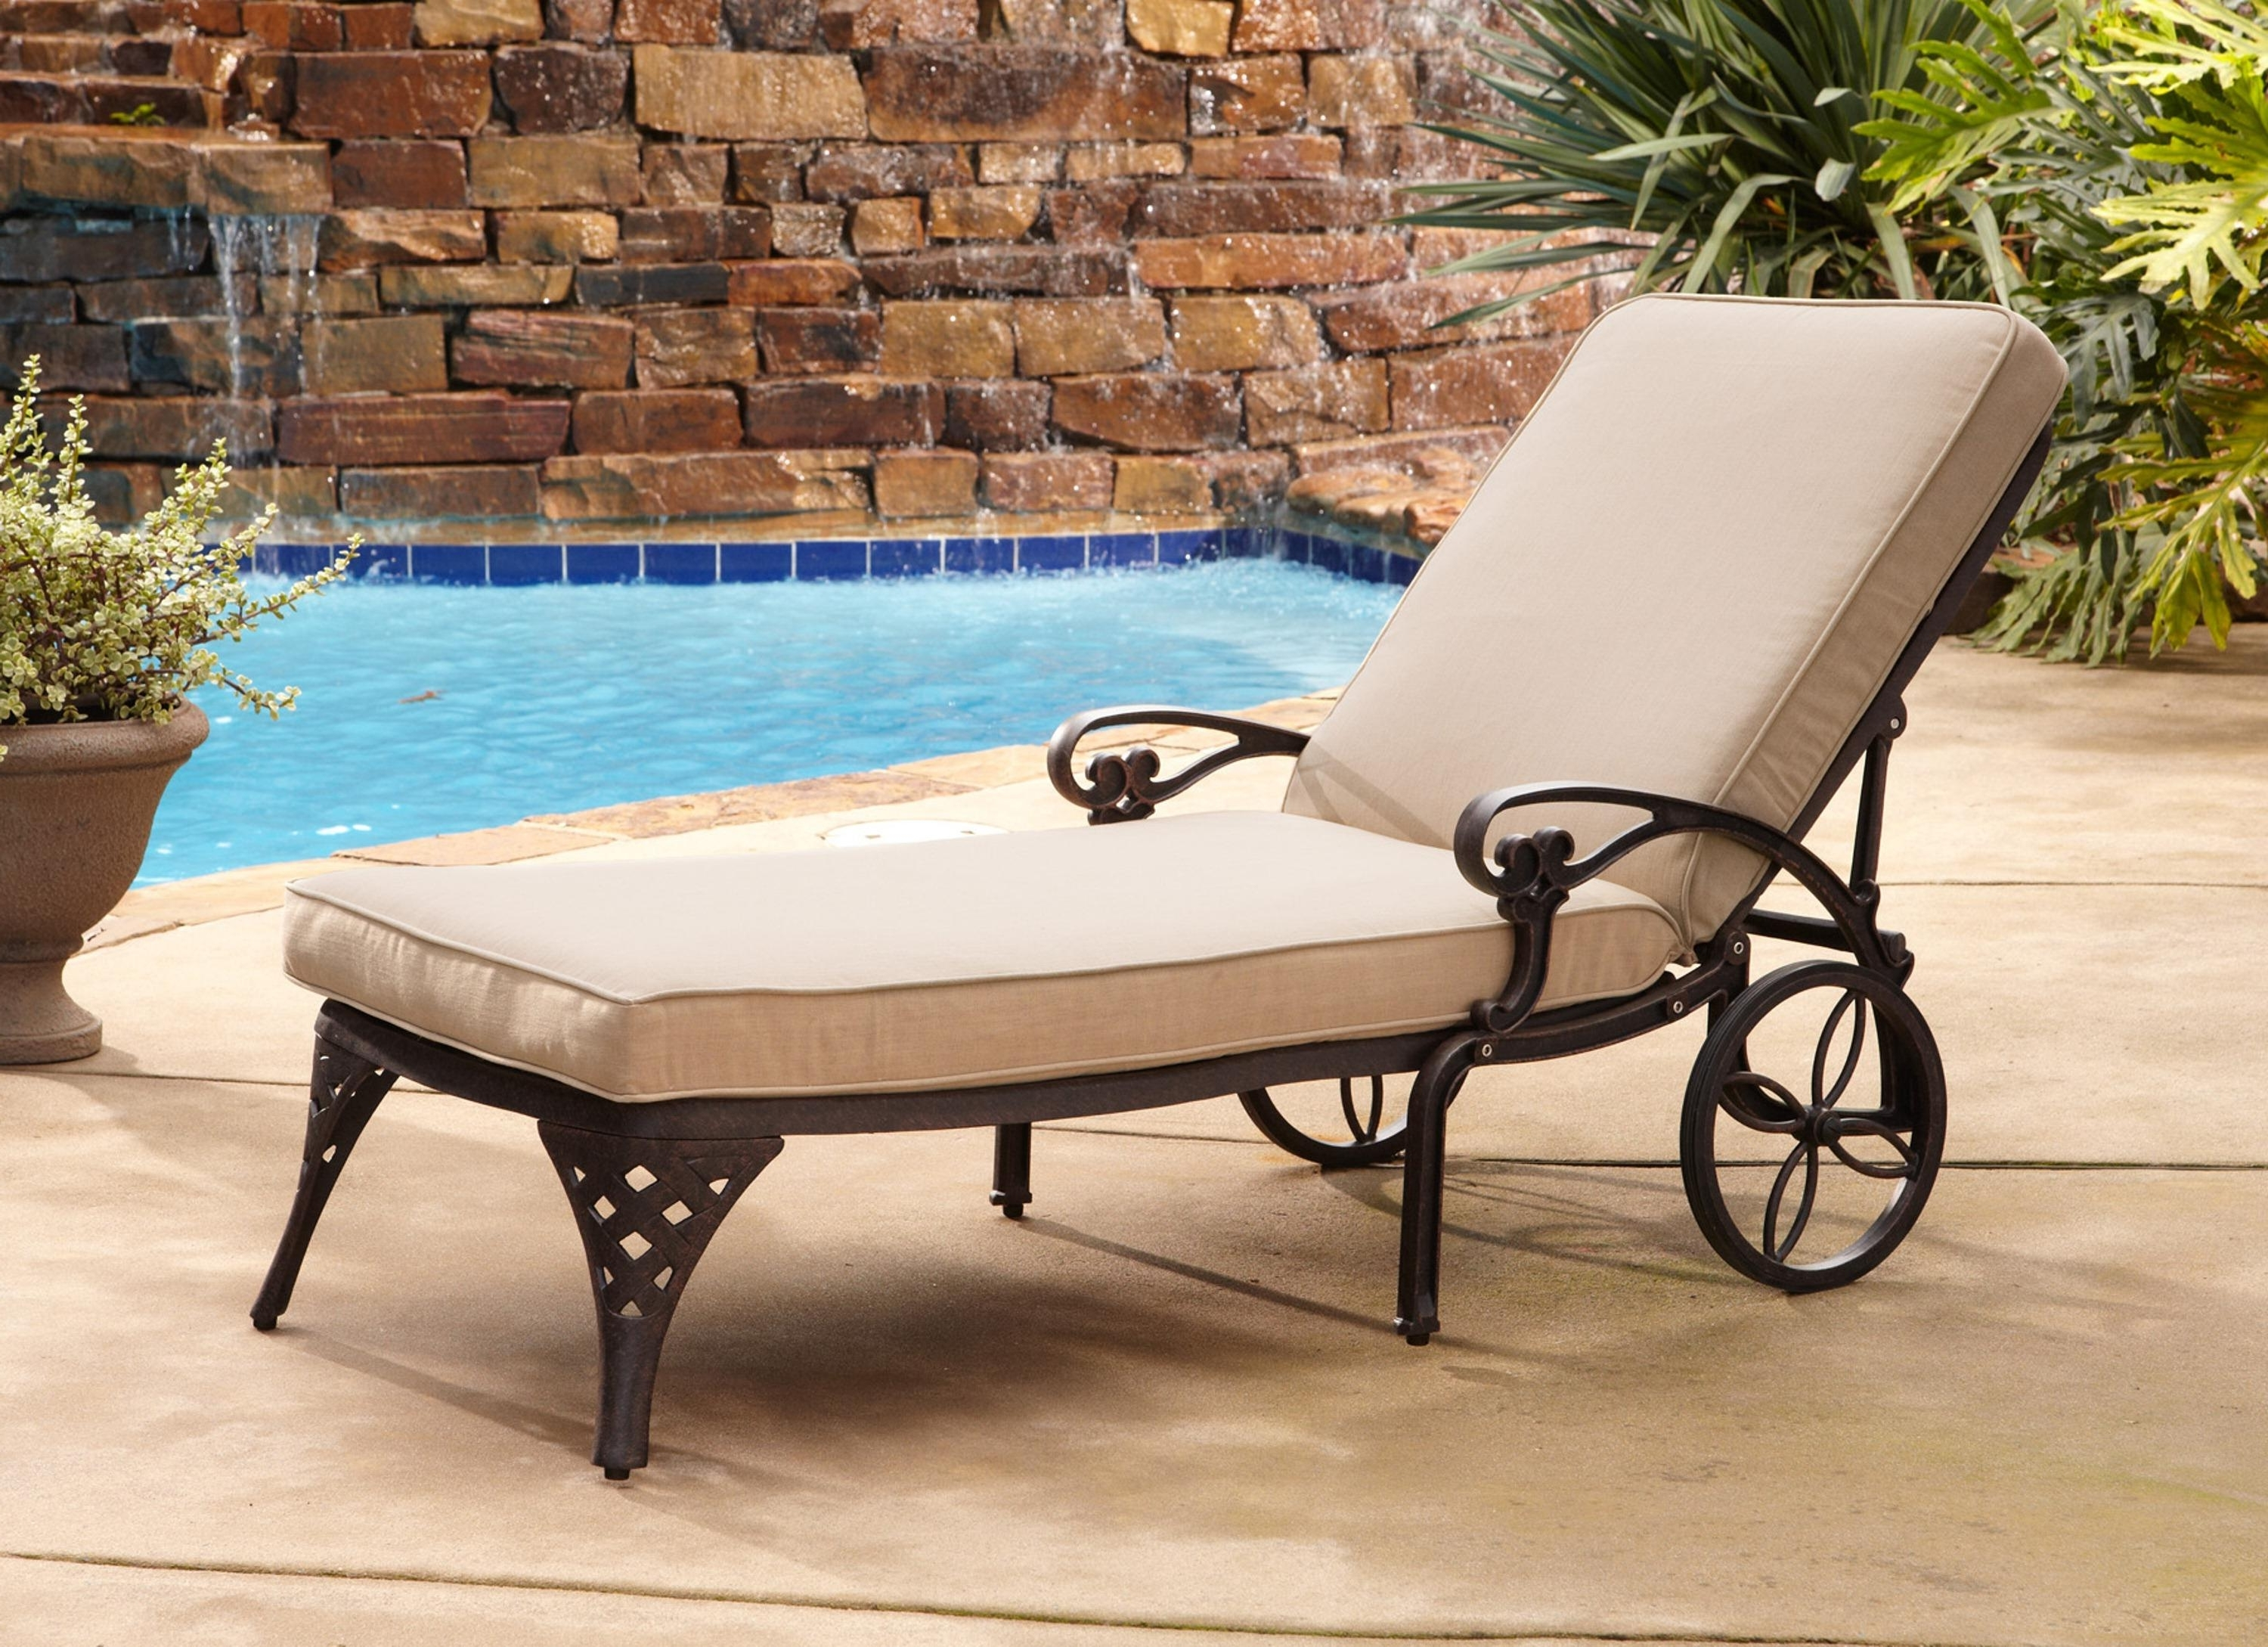 Metal Chaise Lounge Intended For Preferred Metal Chaise Lounge Chairs With Wheels • Lounge Chairs Ideas (View 14 of 15)